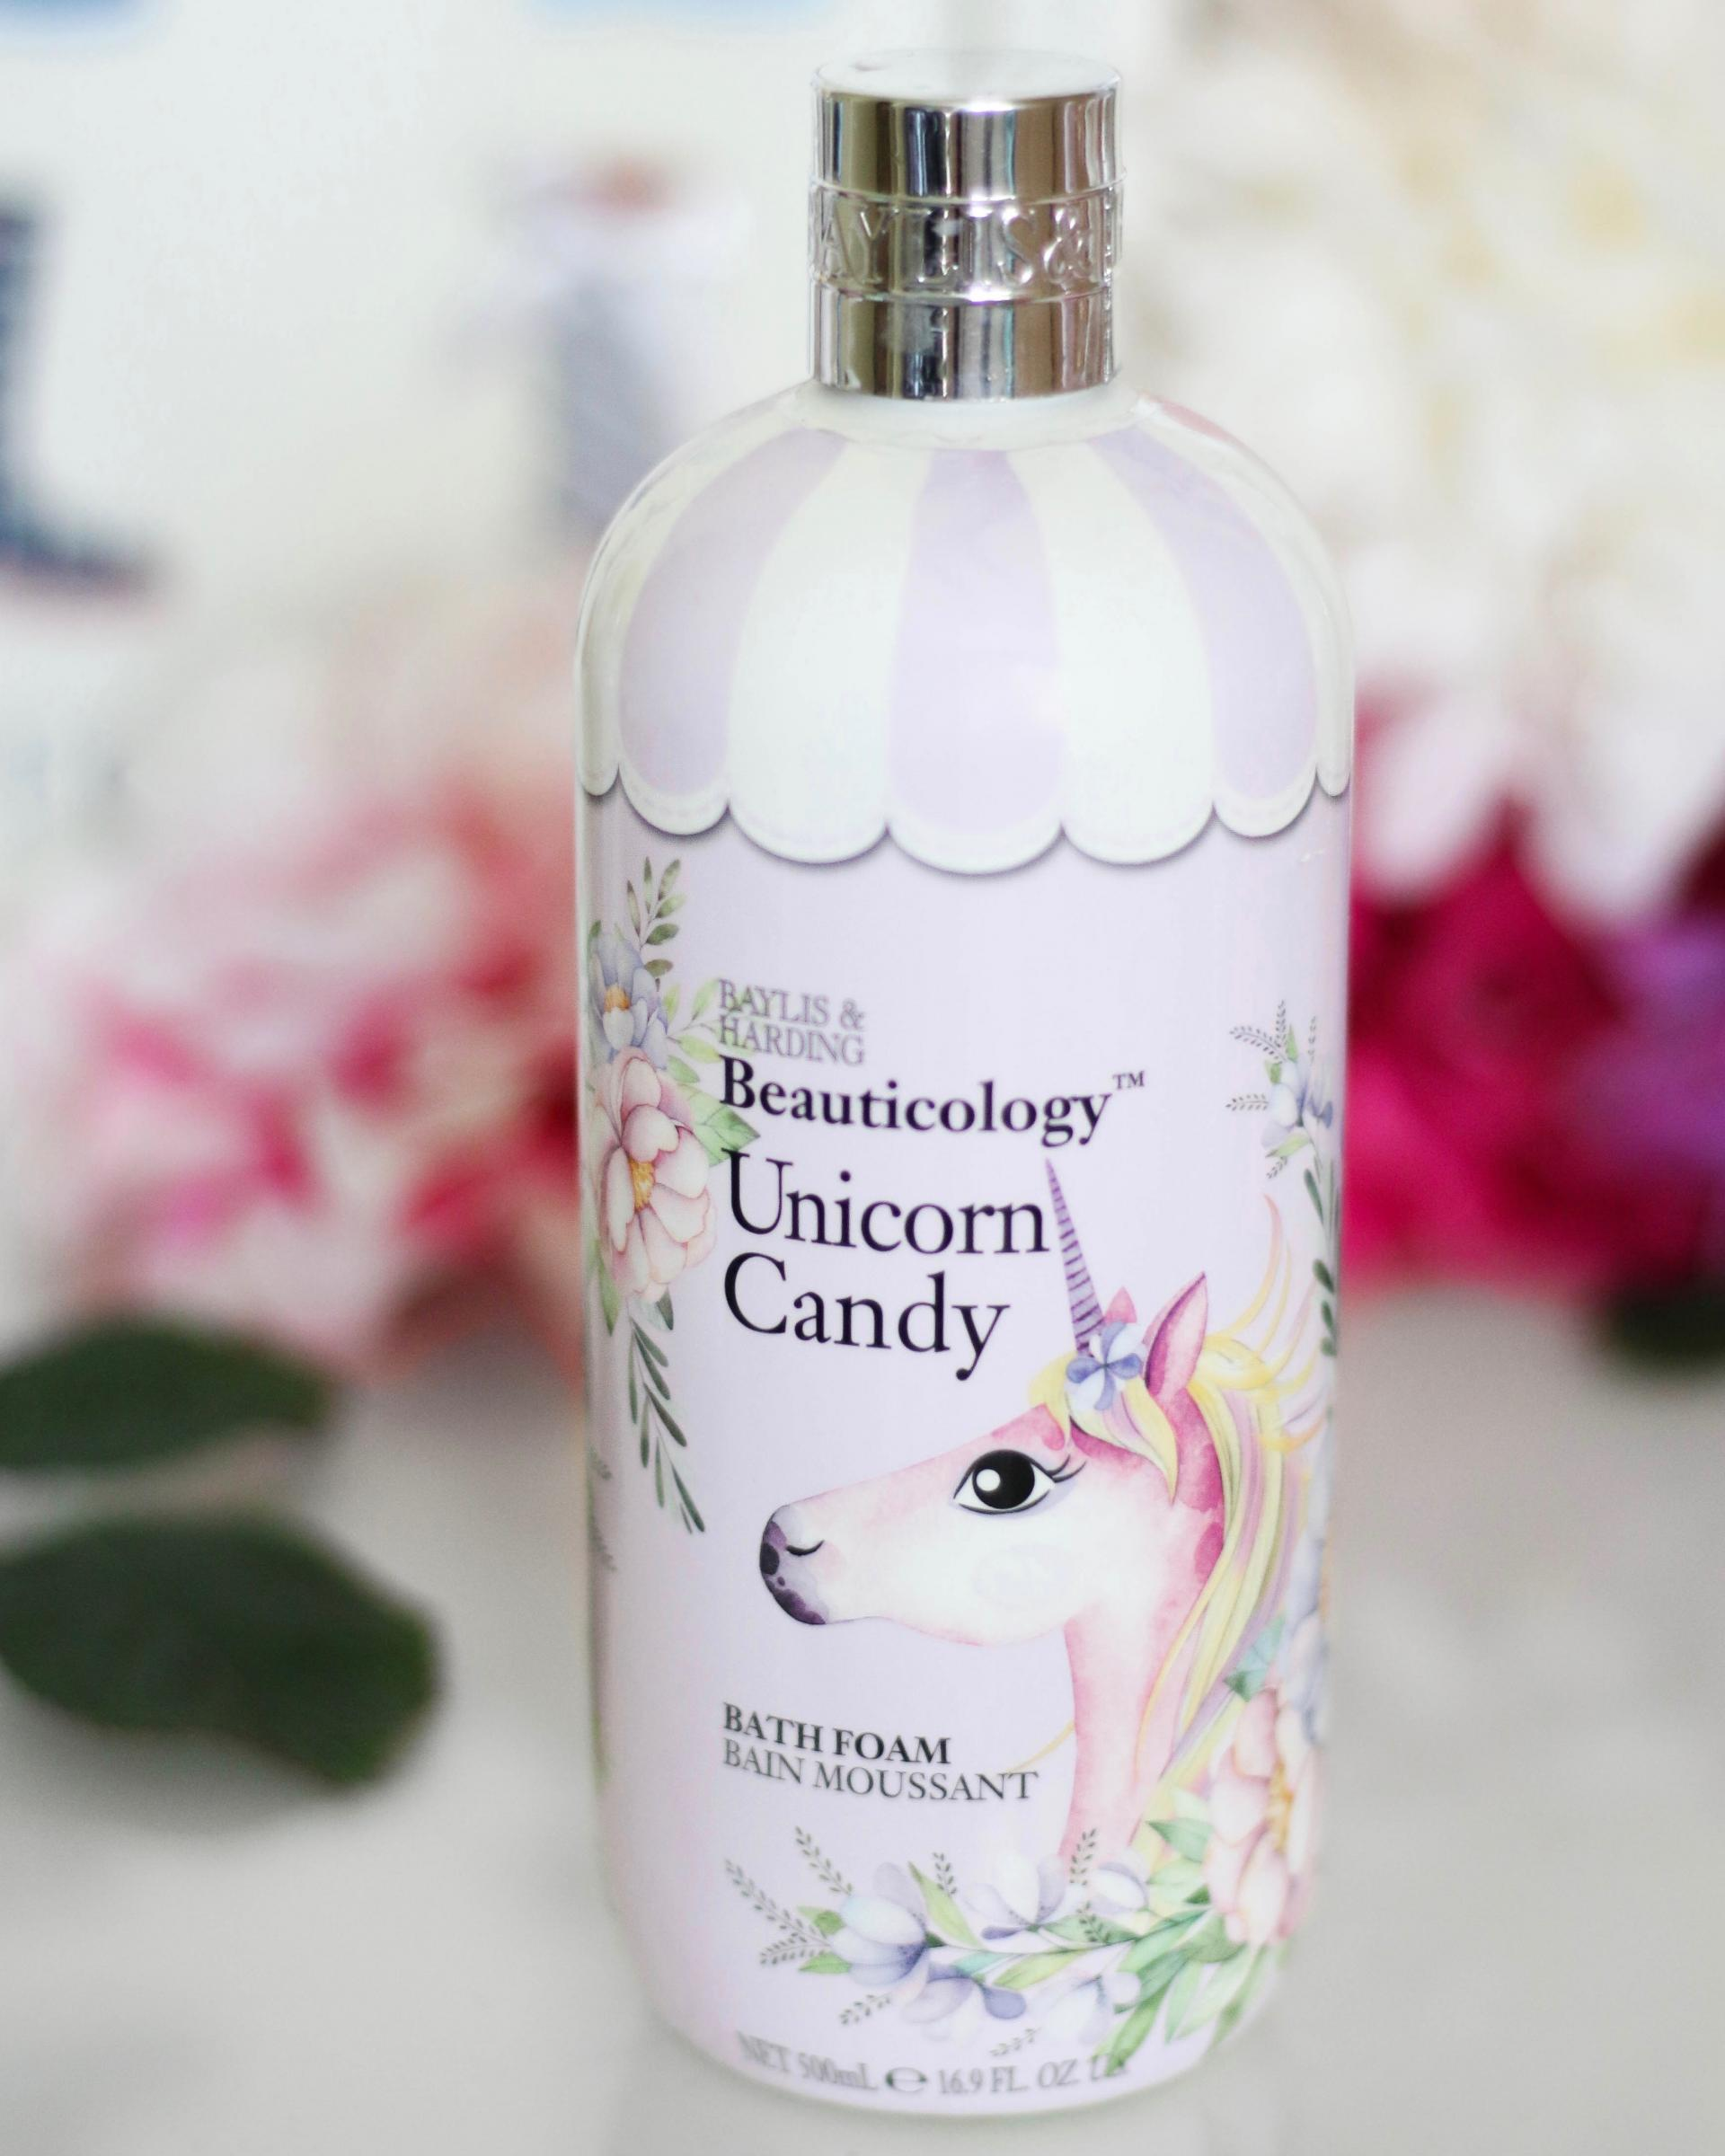 Baylis & Harding Beauticology Unicorn Candy Bath Foam